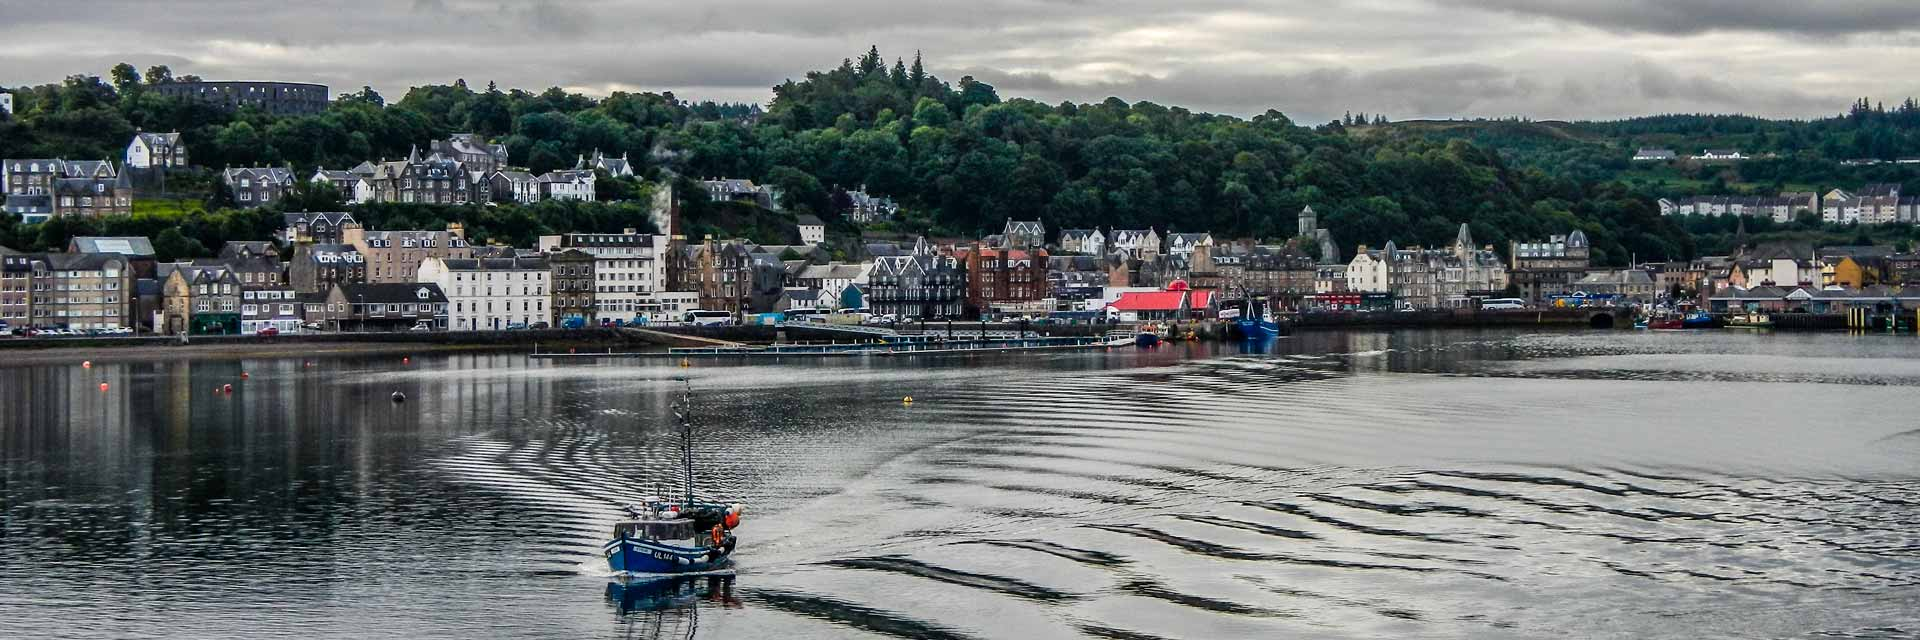 Oban - Seafood Capital of Scotland and the Gateway to the Isles